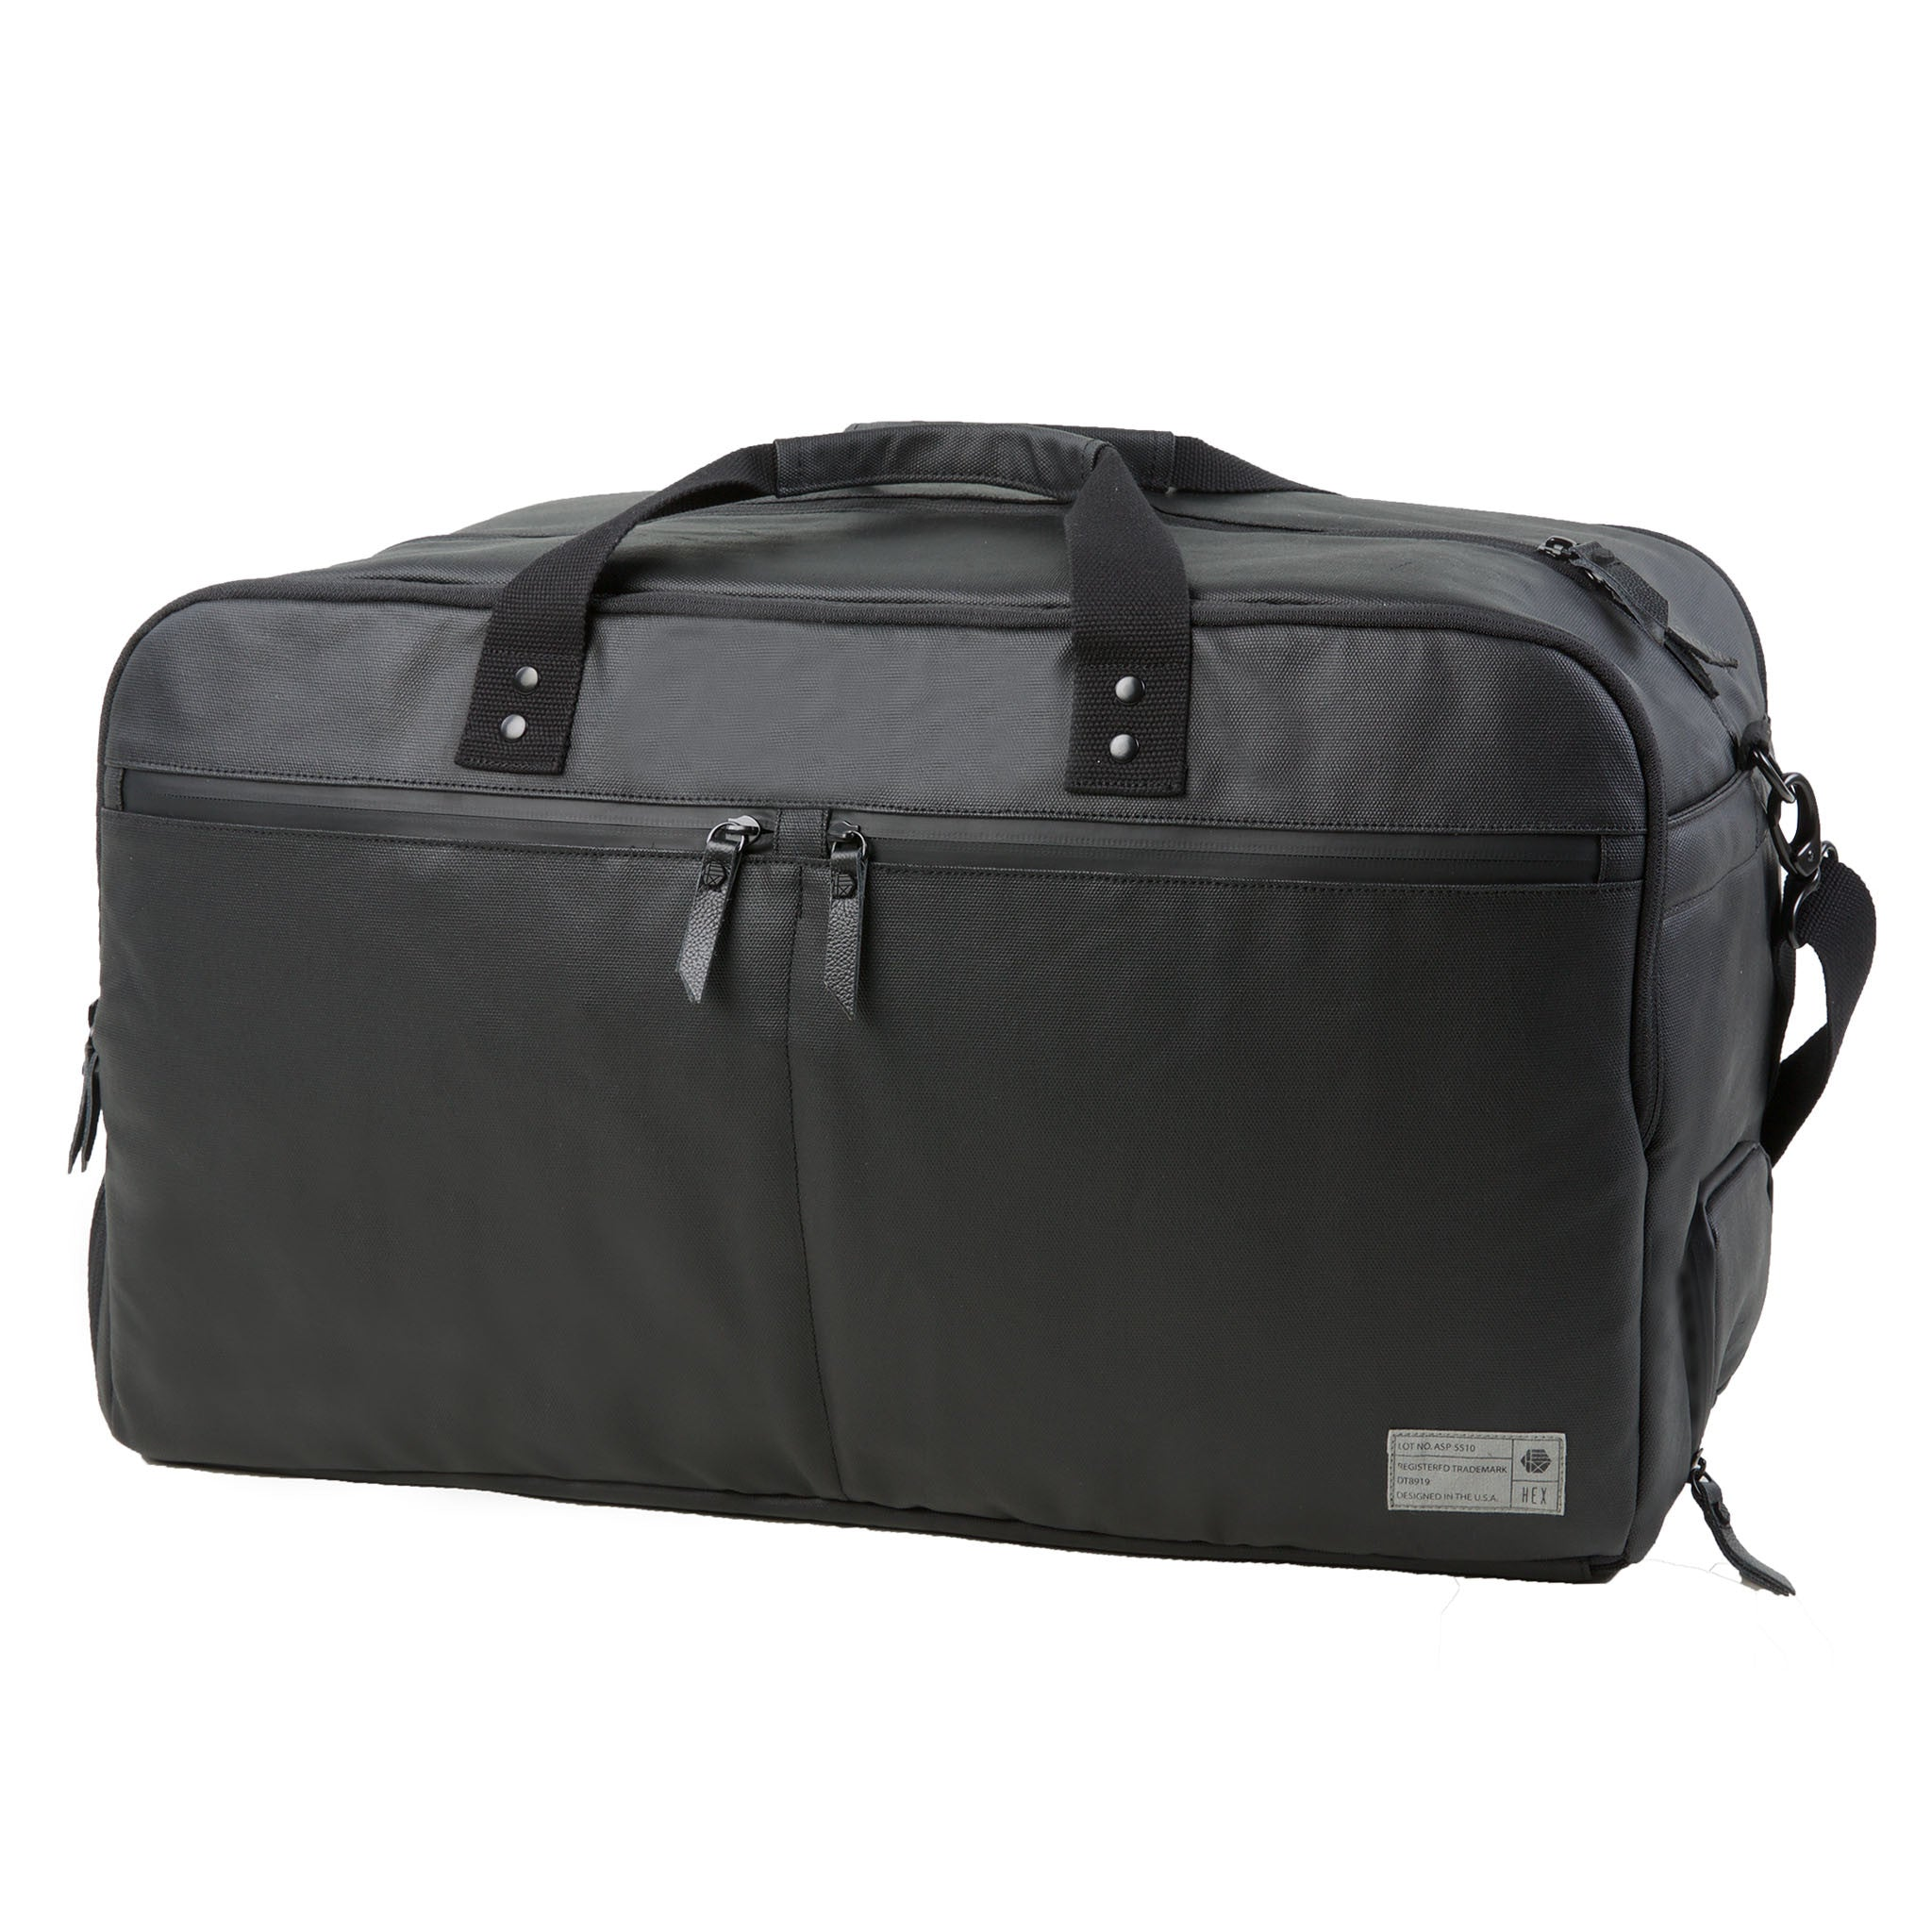 aa266f2035 Black Calibre Gym Duffel